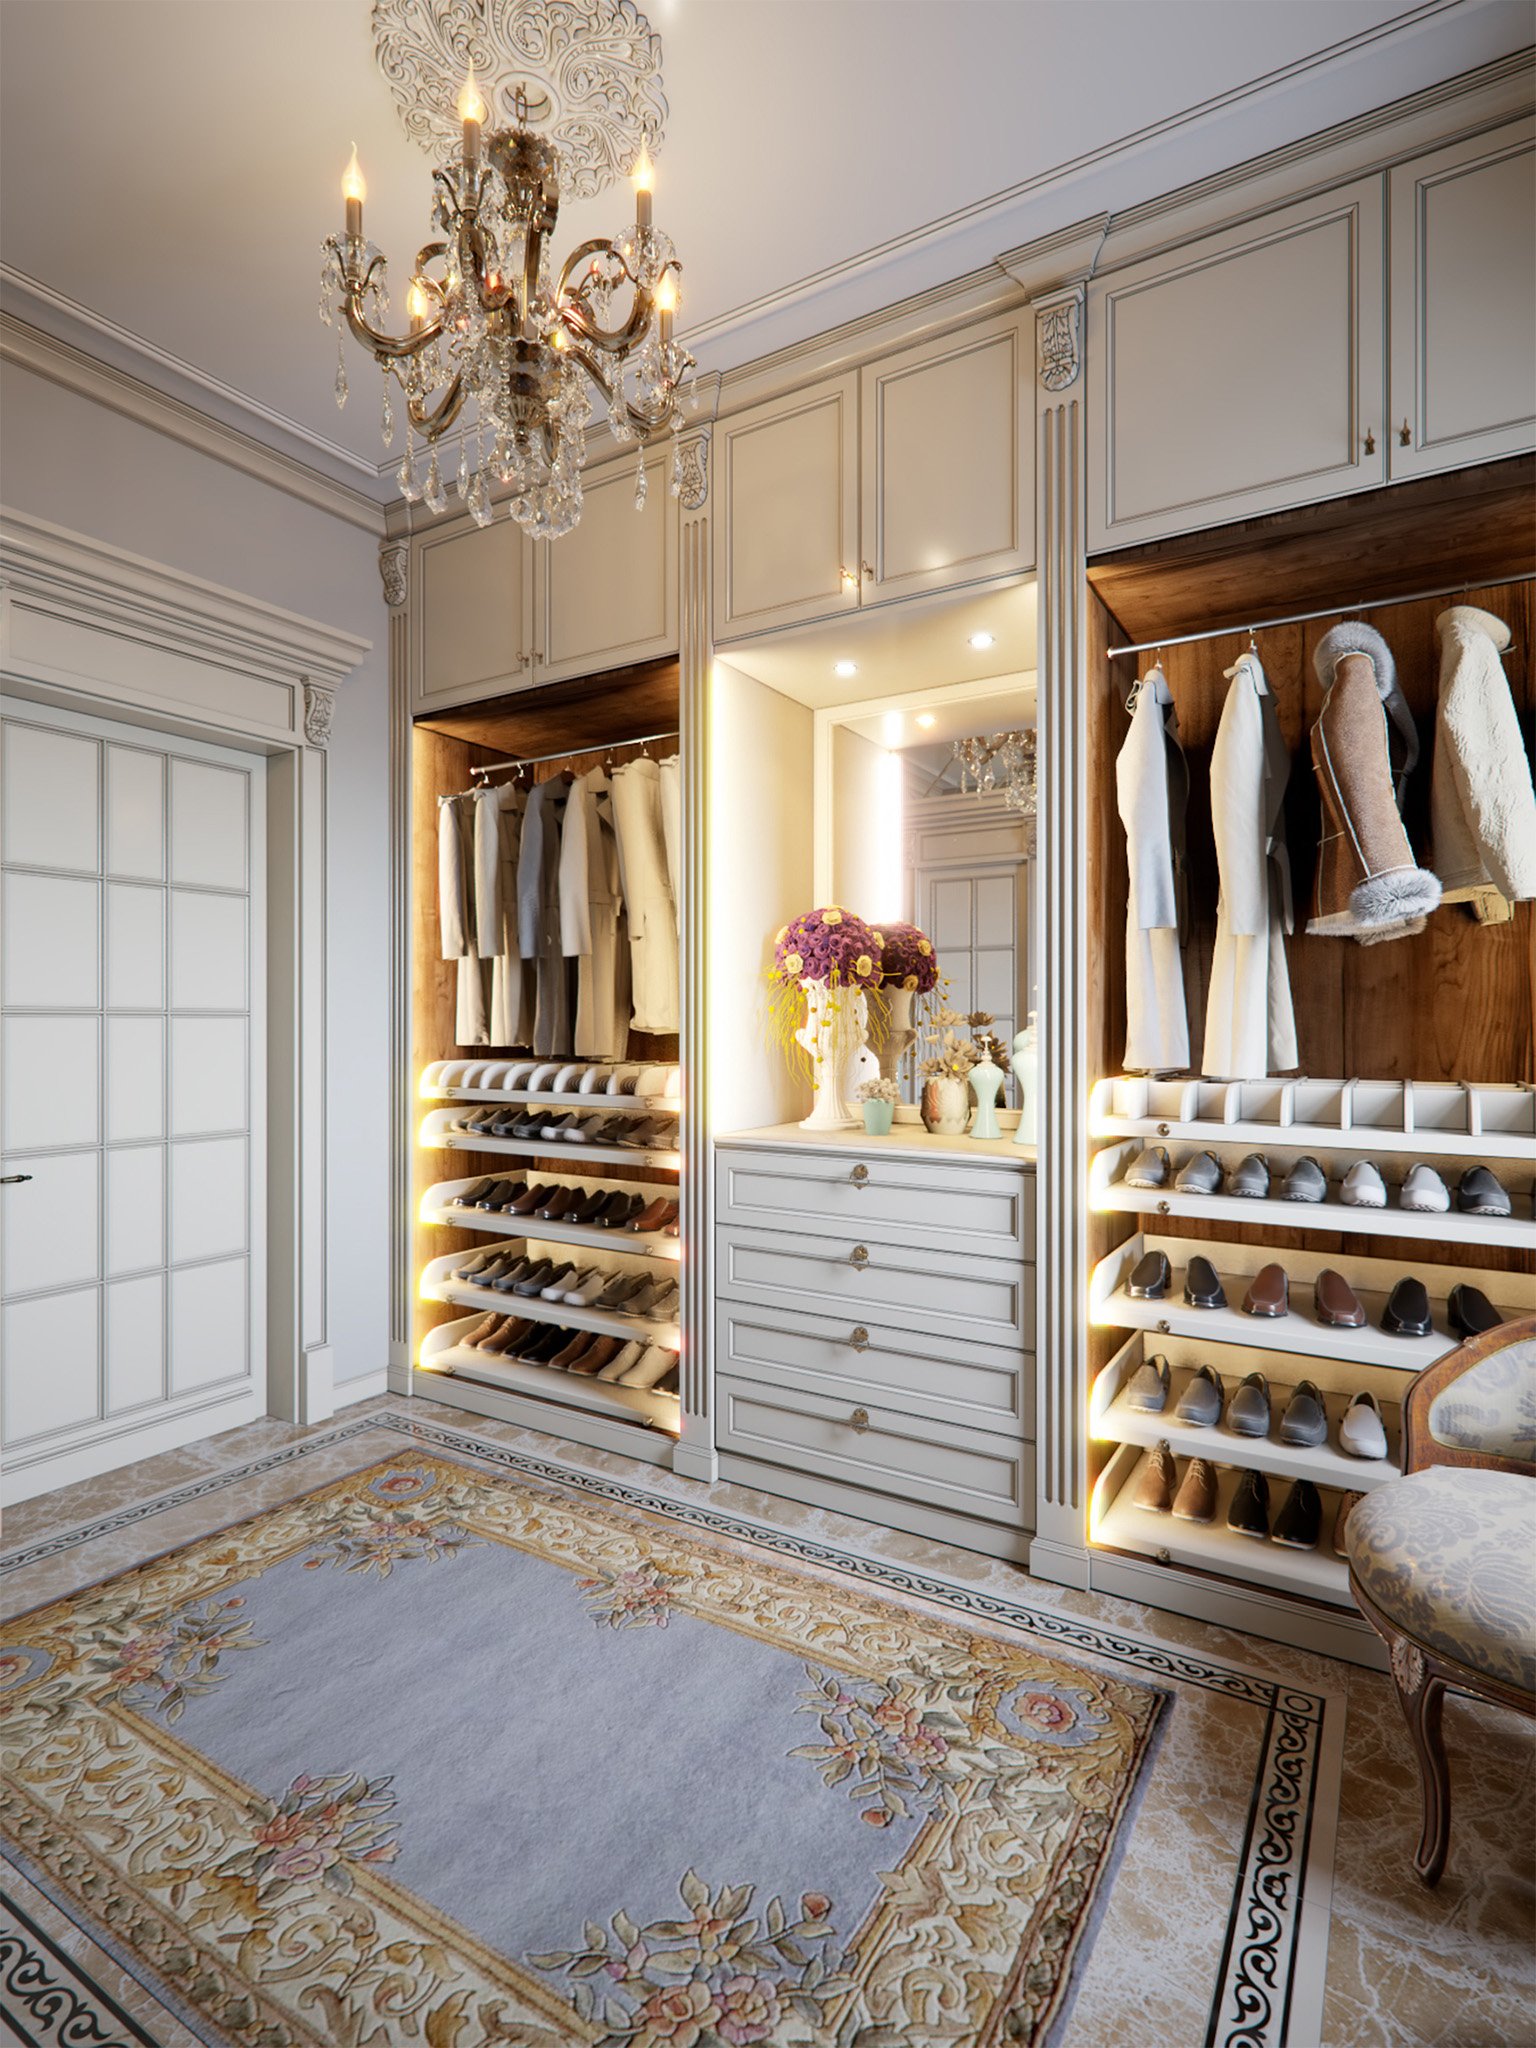 Luxury dressing room, shoe storage cabinet, dressing room lights